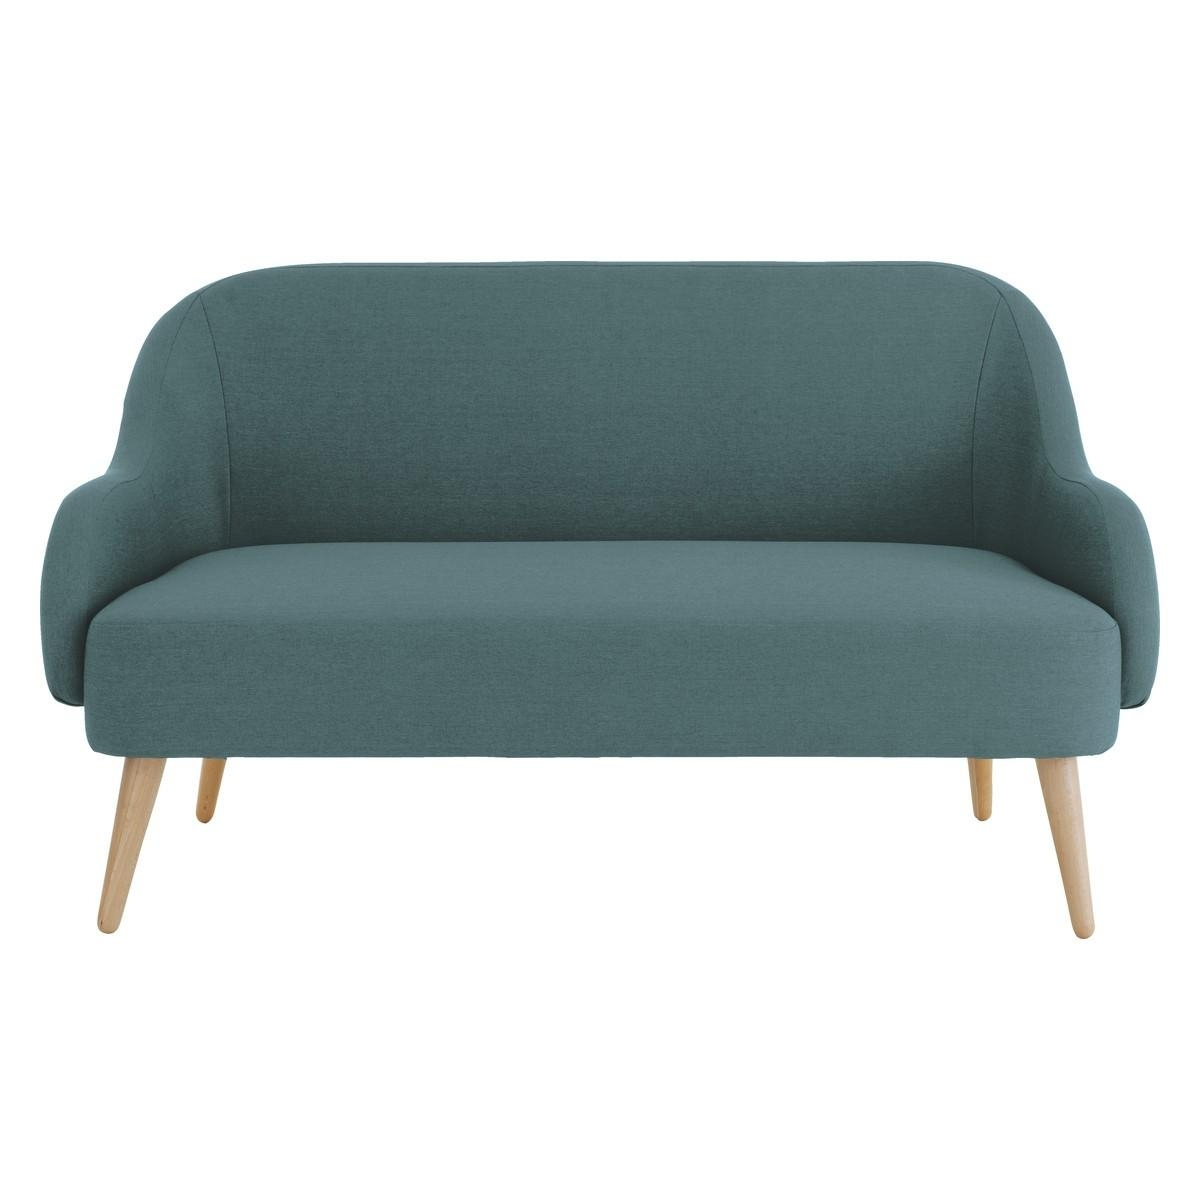 Momo Teal Blue Fabric 2 Seater Sofa | Buy Now At Habitat Uk For Two Seater Sofas (Image 12 of 20)